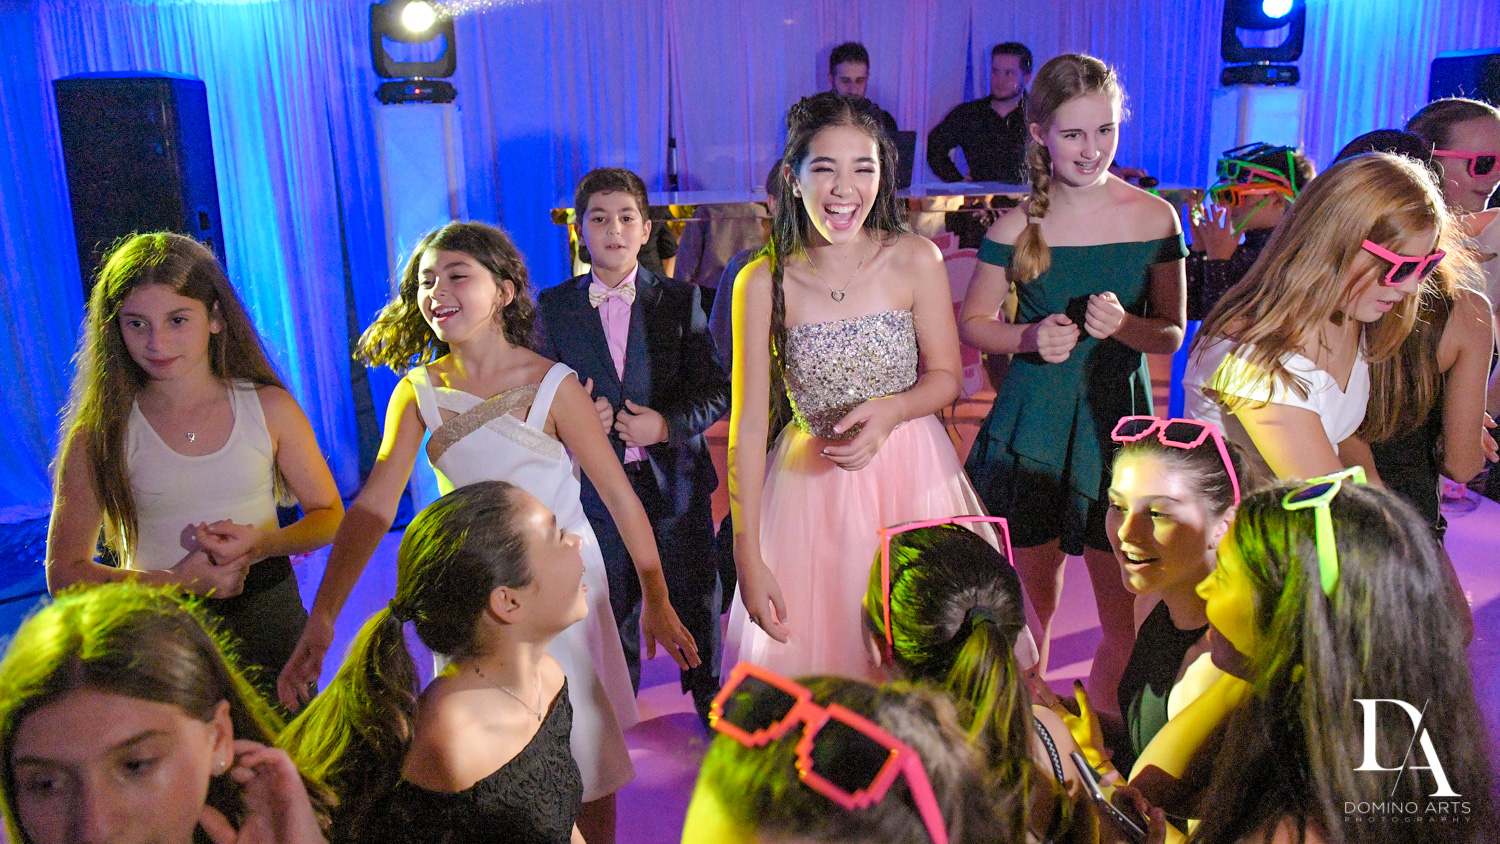 Fun party pictures at Bat Mitzvah at Saint Andrews Country Club South Florida by Domino Arts Photography